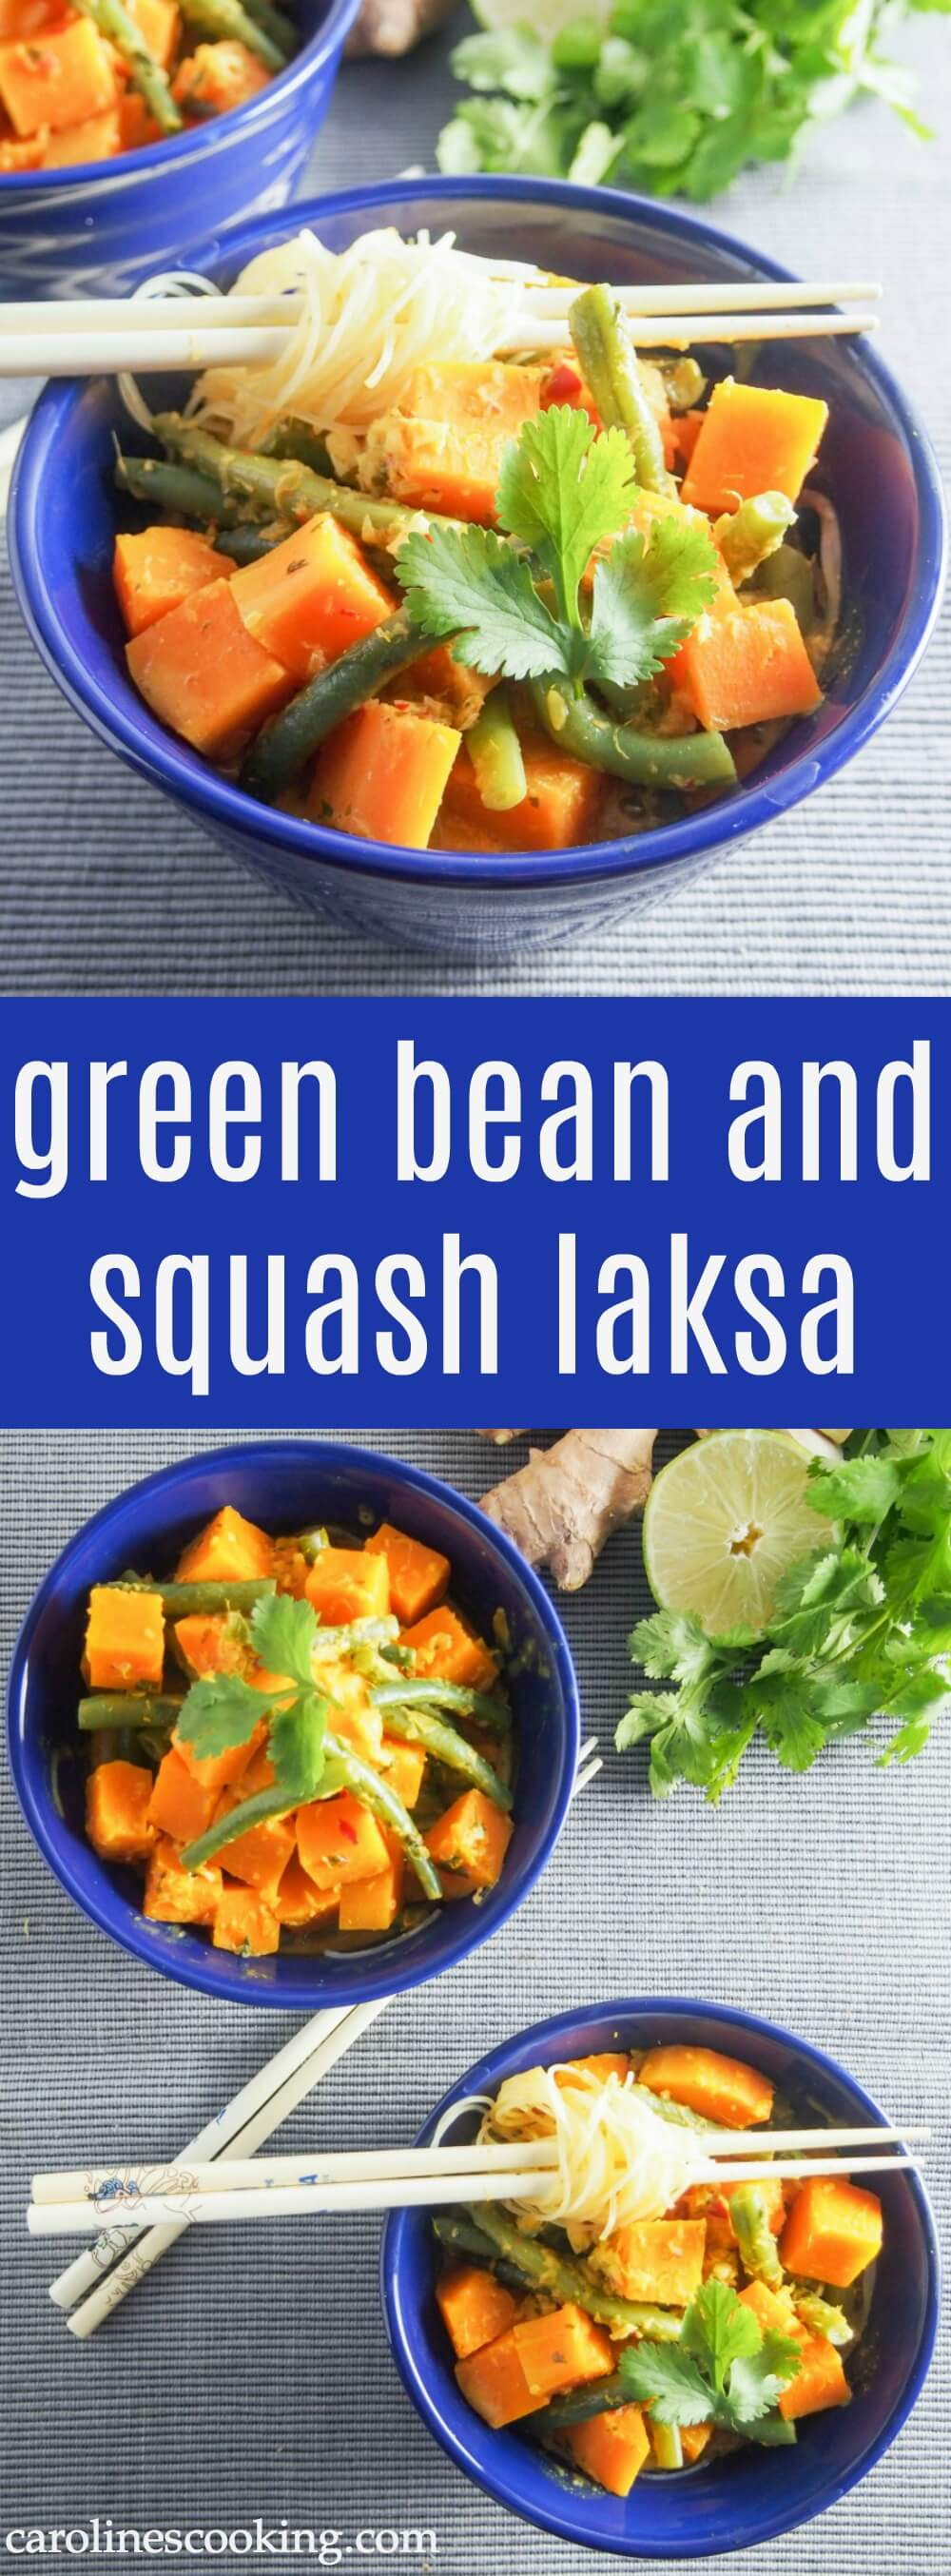 This green bean and squash laksa is a delicious vegan take on the classic coconuty noodle dish - spice it up or down, it's full of flavor either way. Plus it's quick to make.